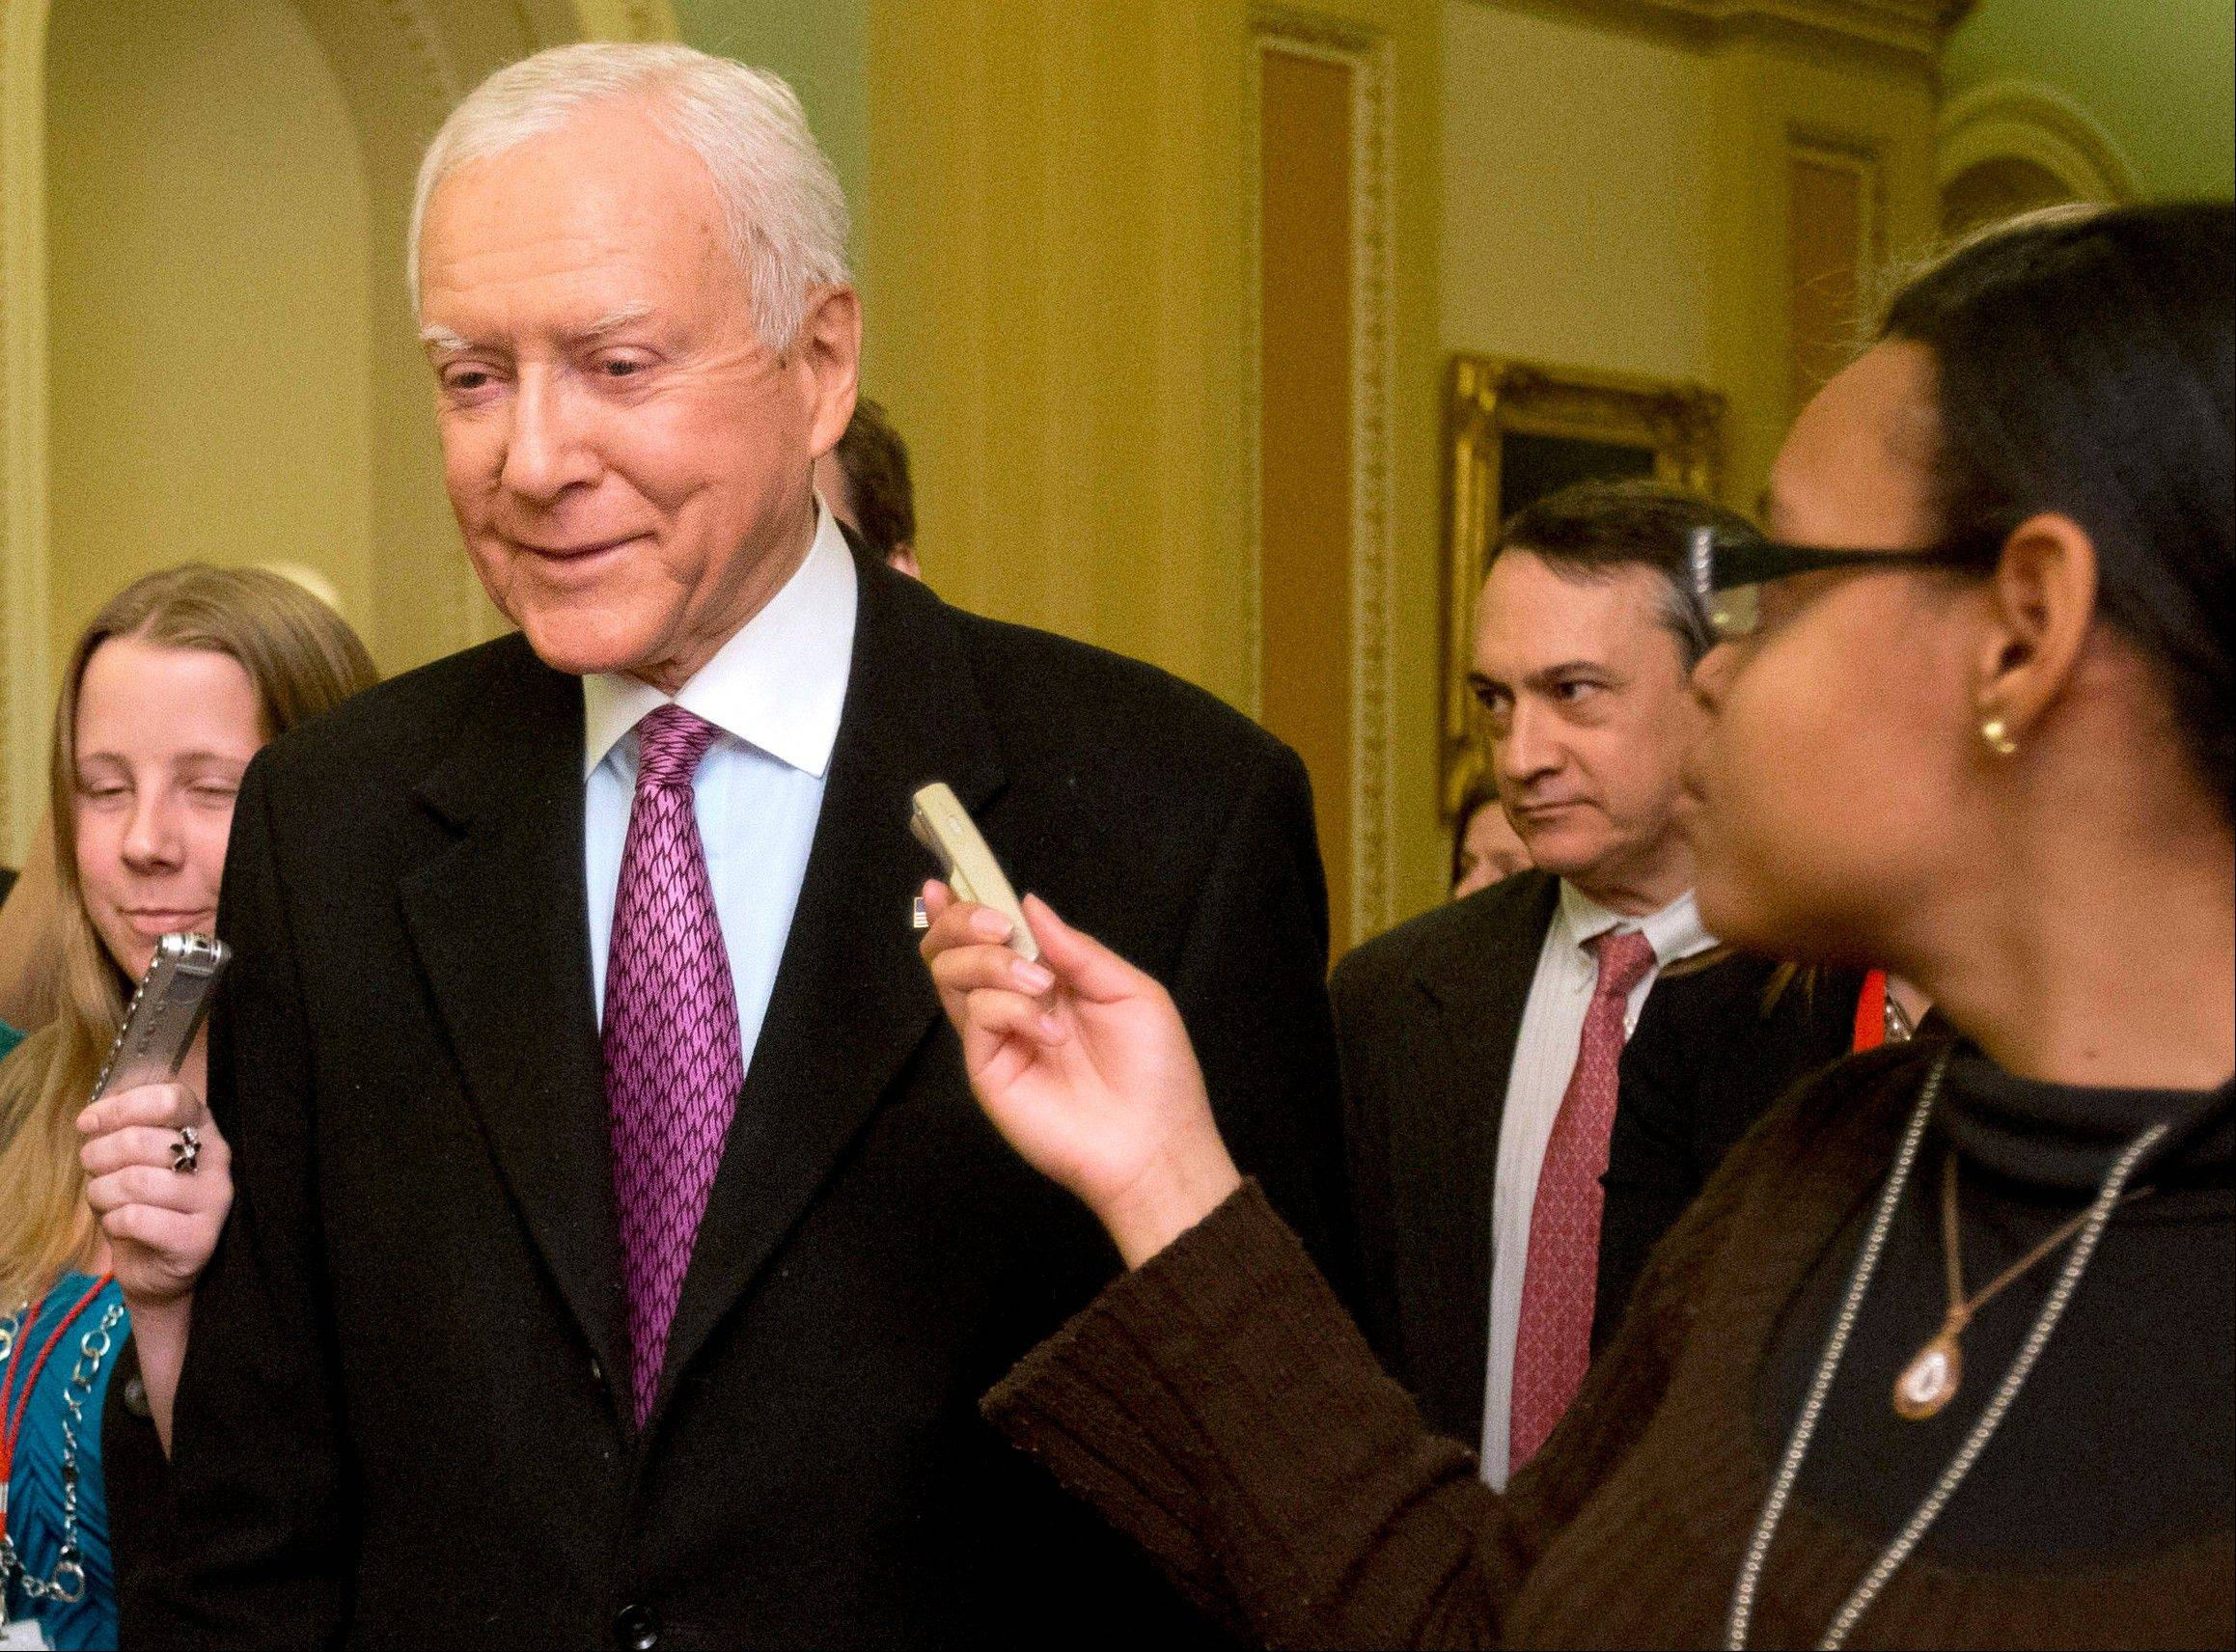 Officials: Senators reach deal on high-tech visas